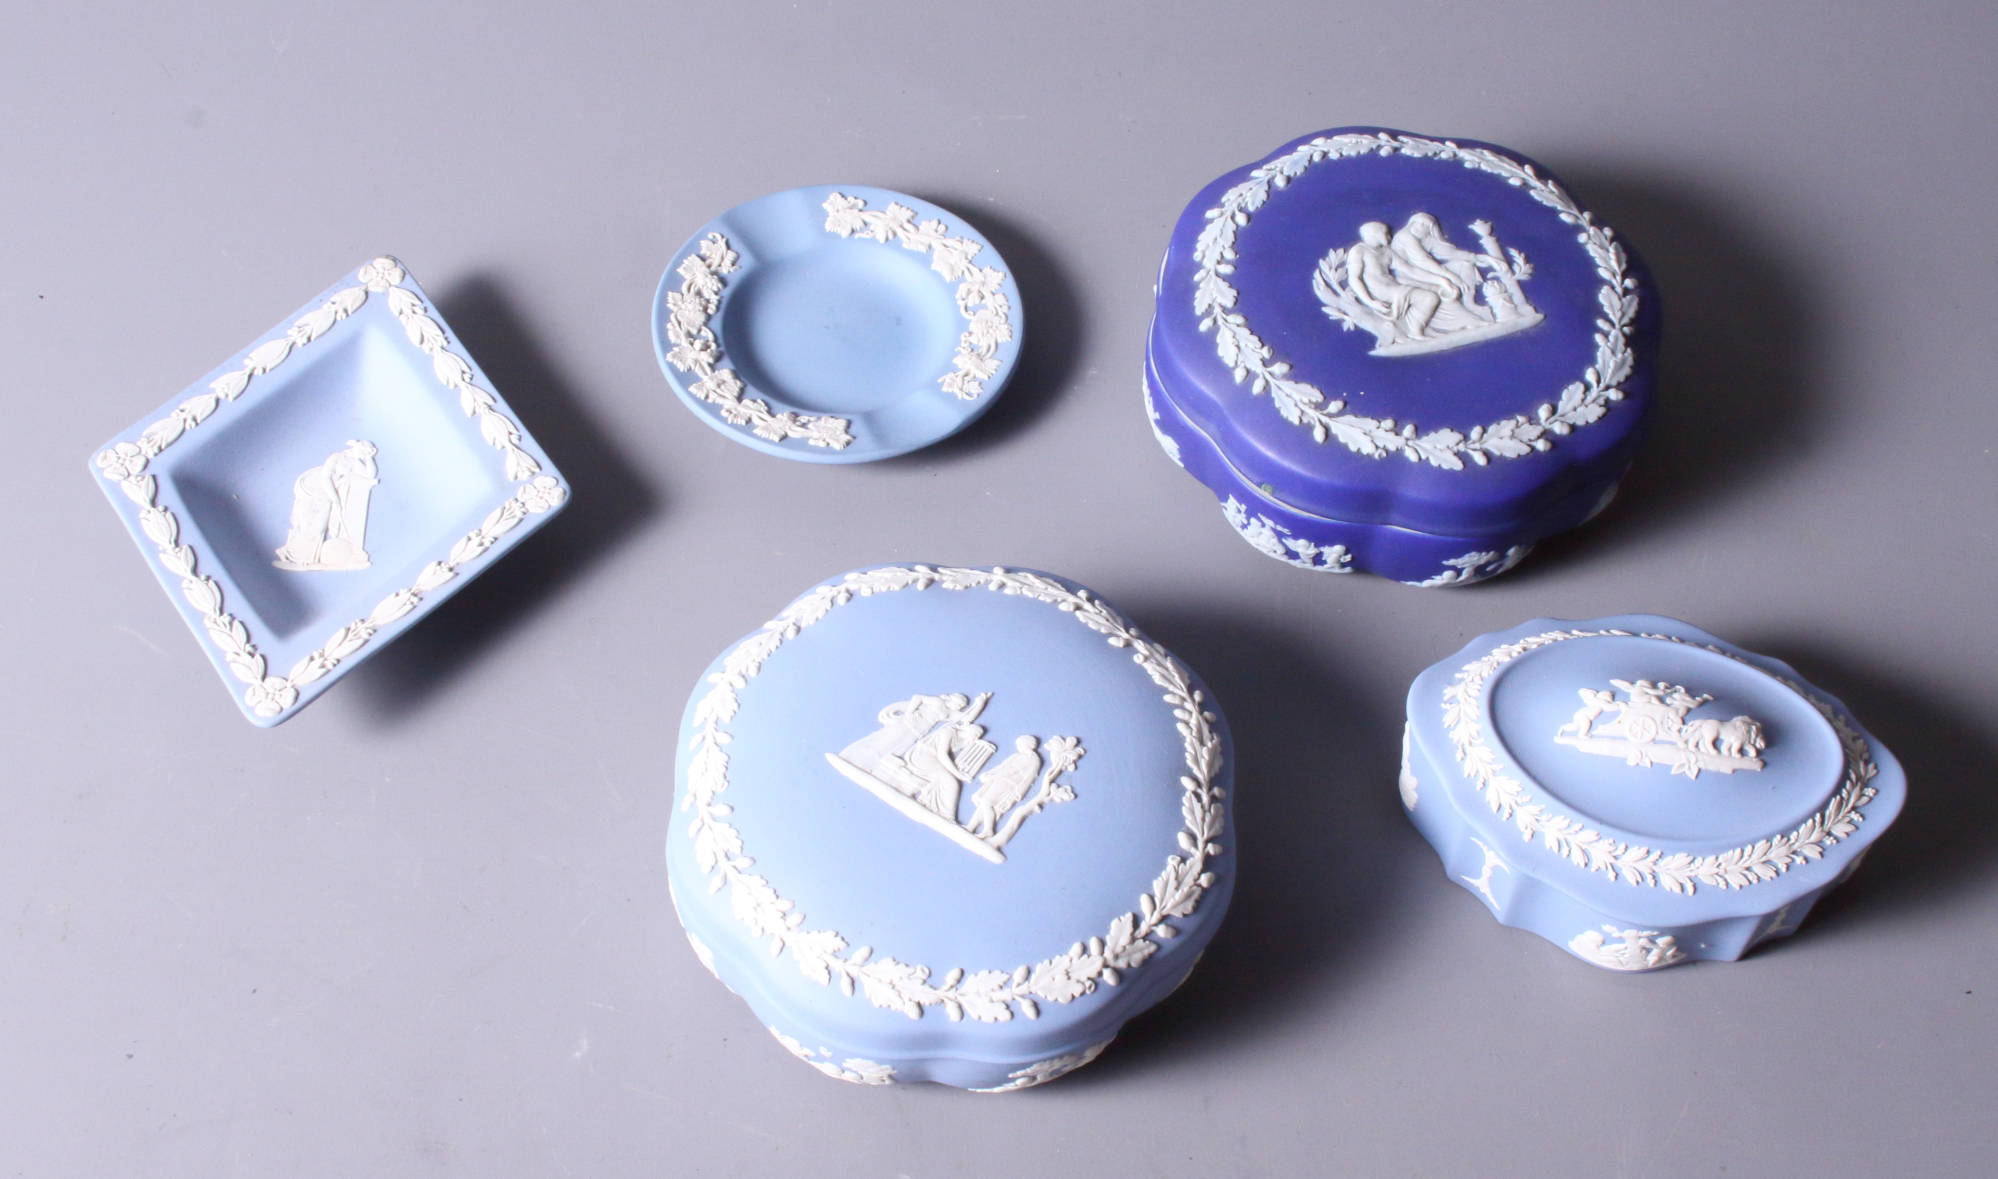 Lot 40 - Five pieces of mid 20th century Wedgwood jasperware, including three trinket boxes and two pin